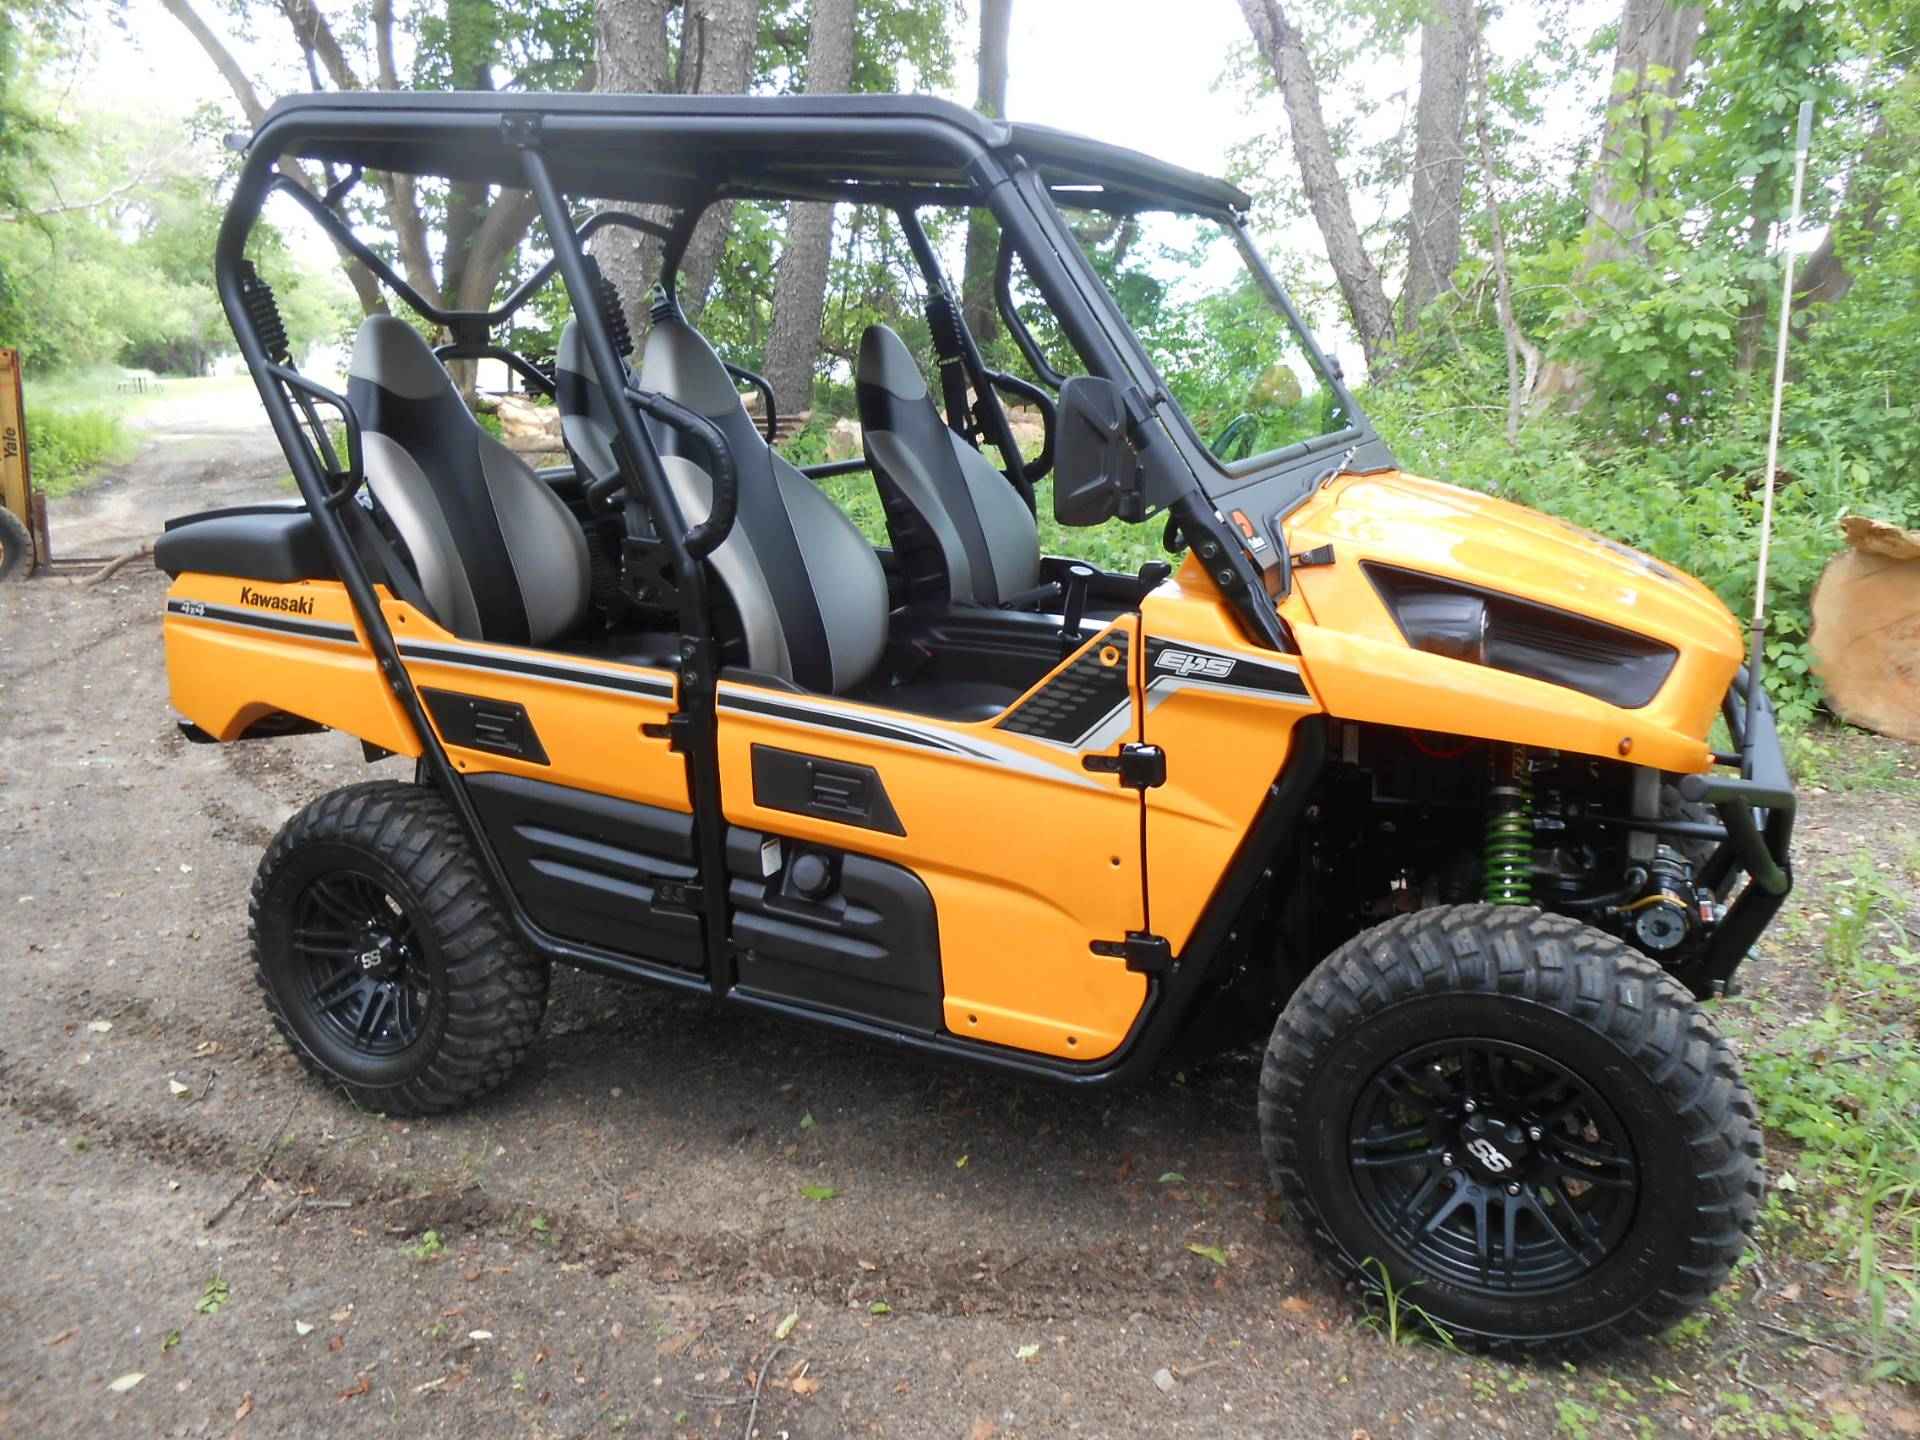 2013 Kawasaki Teryx4™ 750 4x4 EPS LE in Howell, Michigan - Photo 13